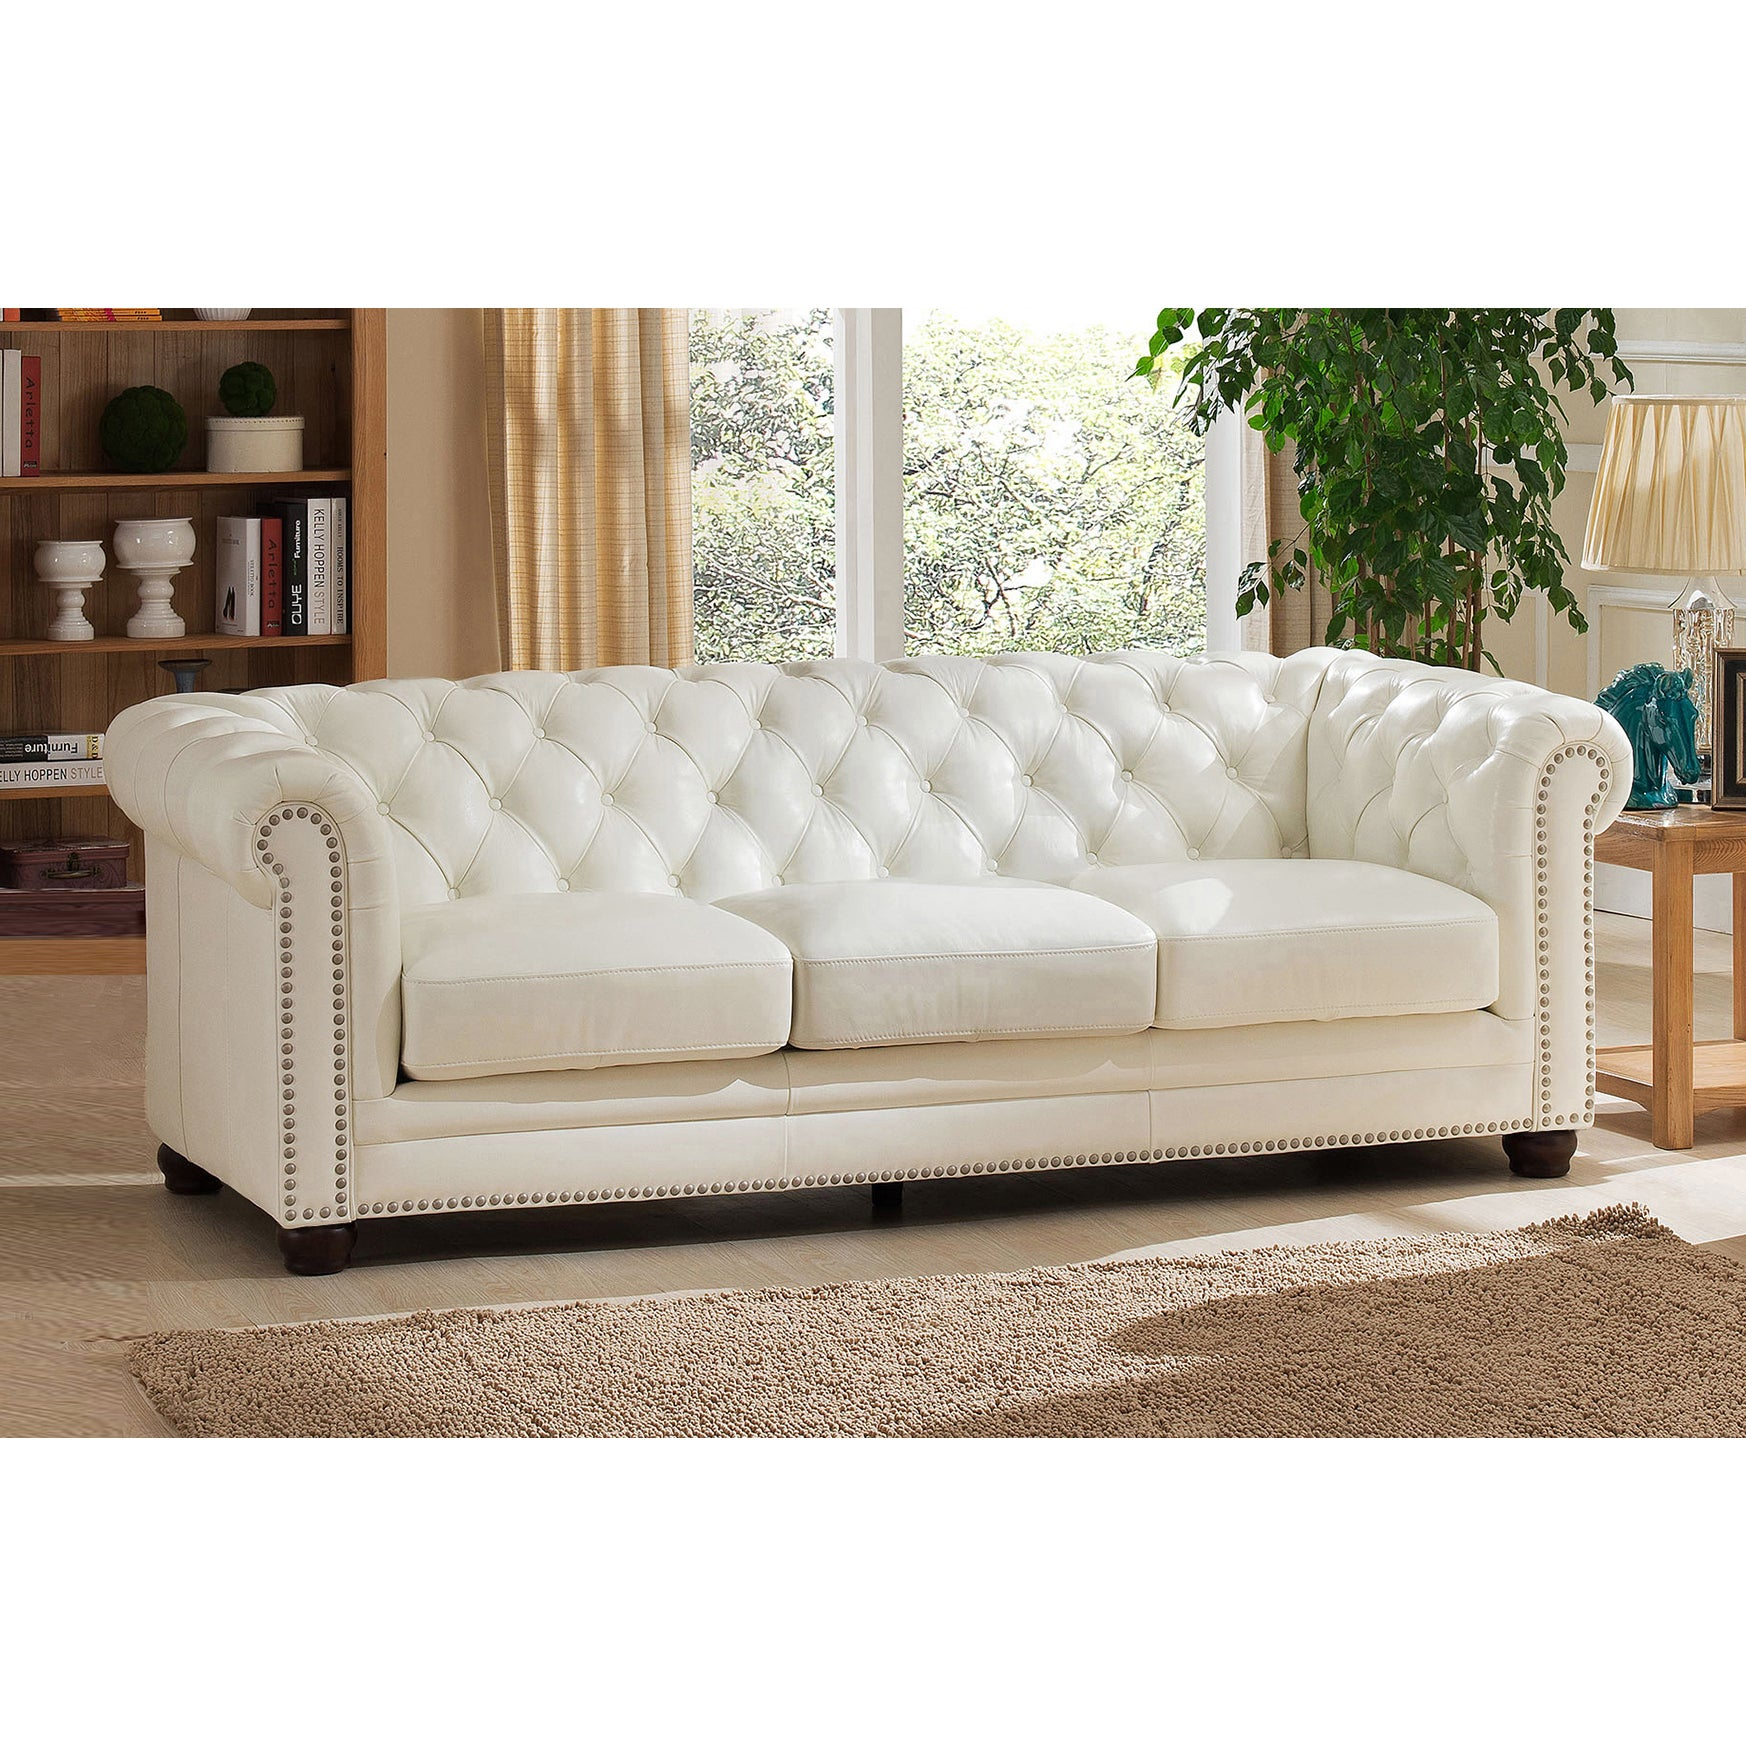 Nebraska Leather Chesterfield Sofa, Loveseat And Chair Set   Free Shipping  Today   Overstock.com   19137006